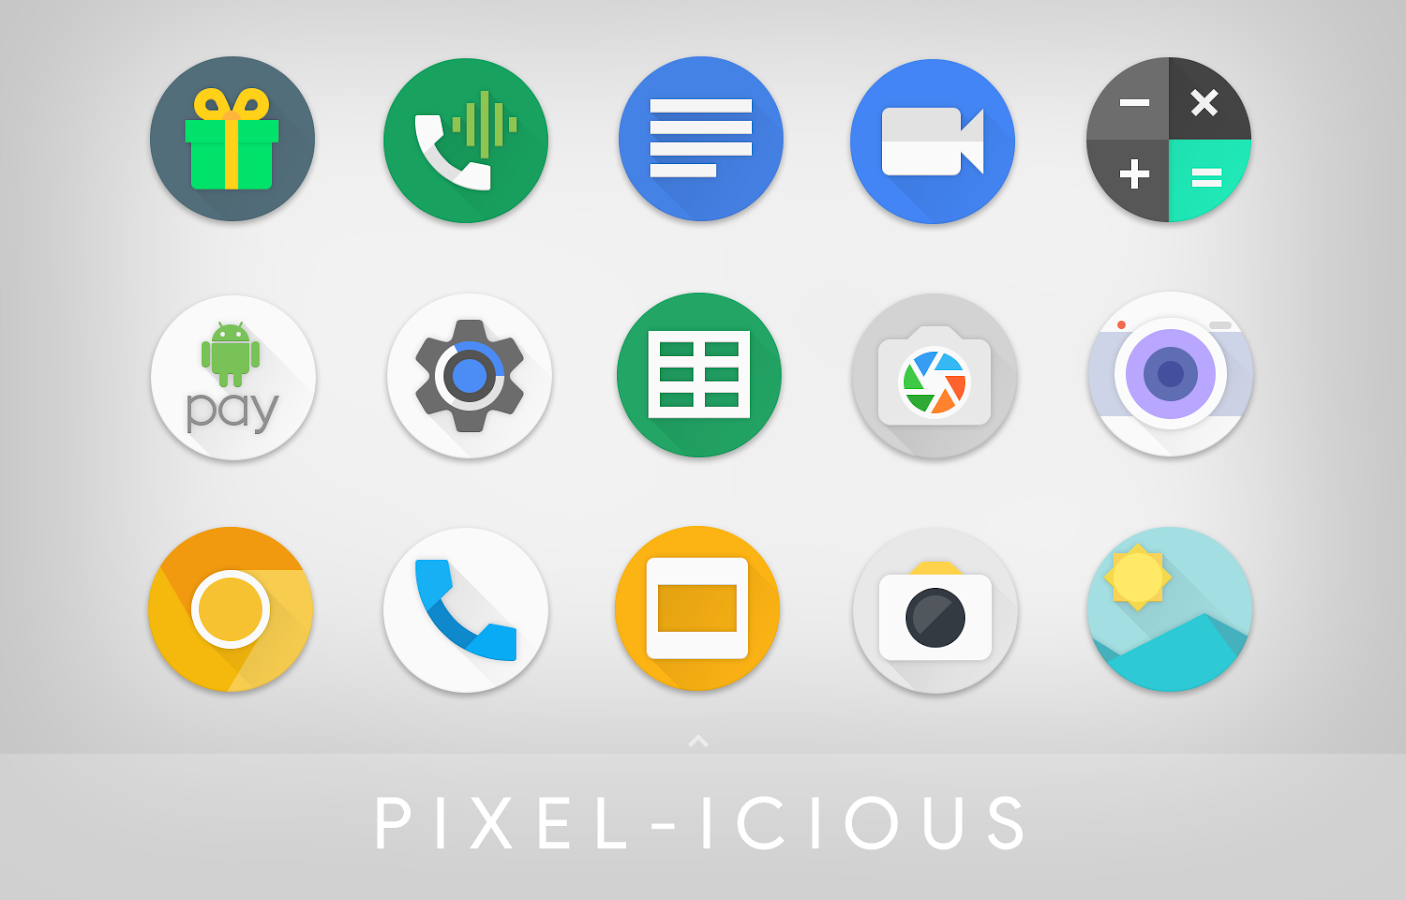 PIXELICIOUS ICON PACK Screenshot 3